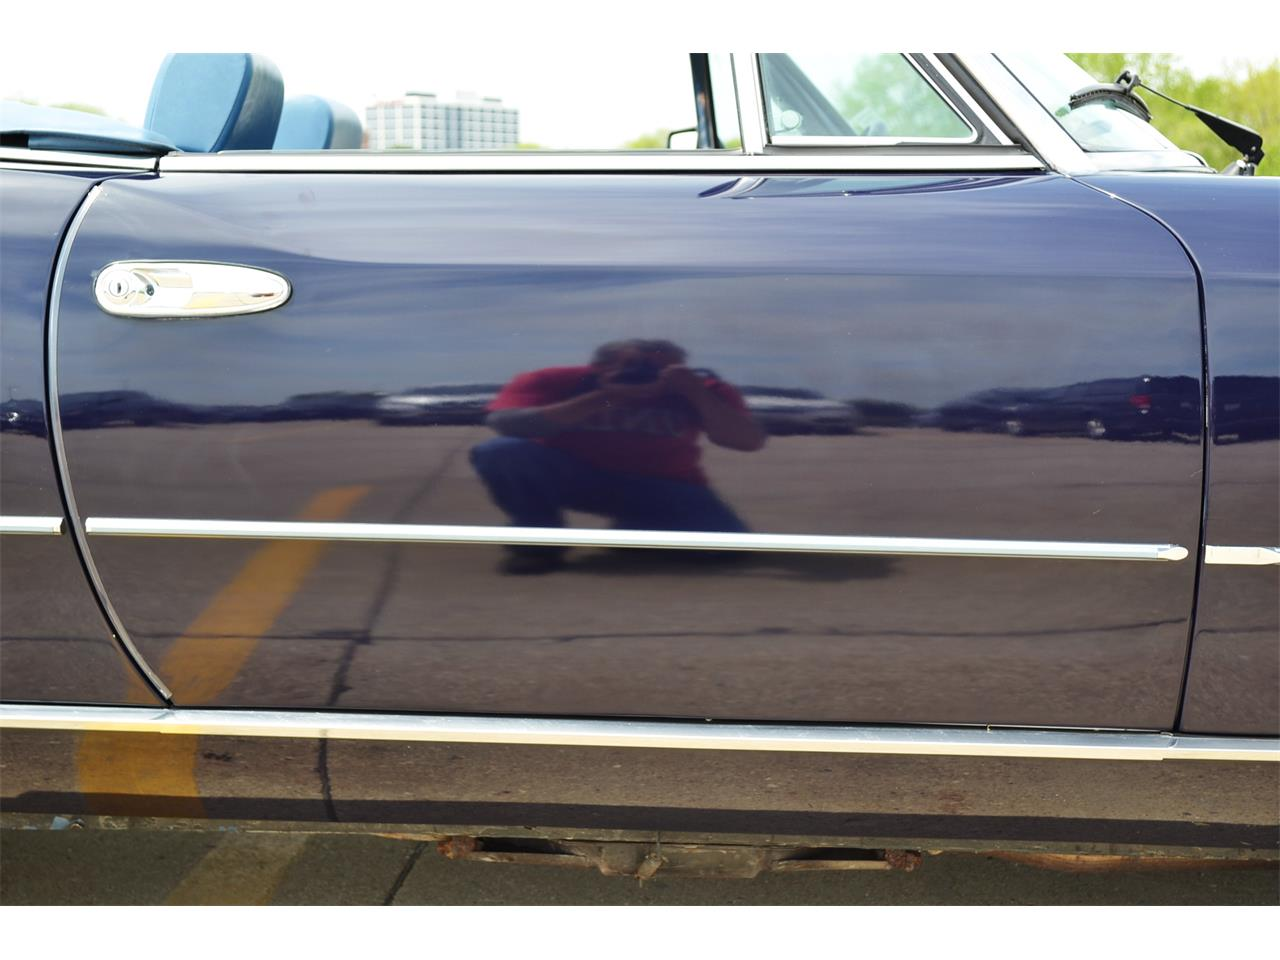 1981 Fiat Spider for sale in Barrington, IL – photo 15